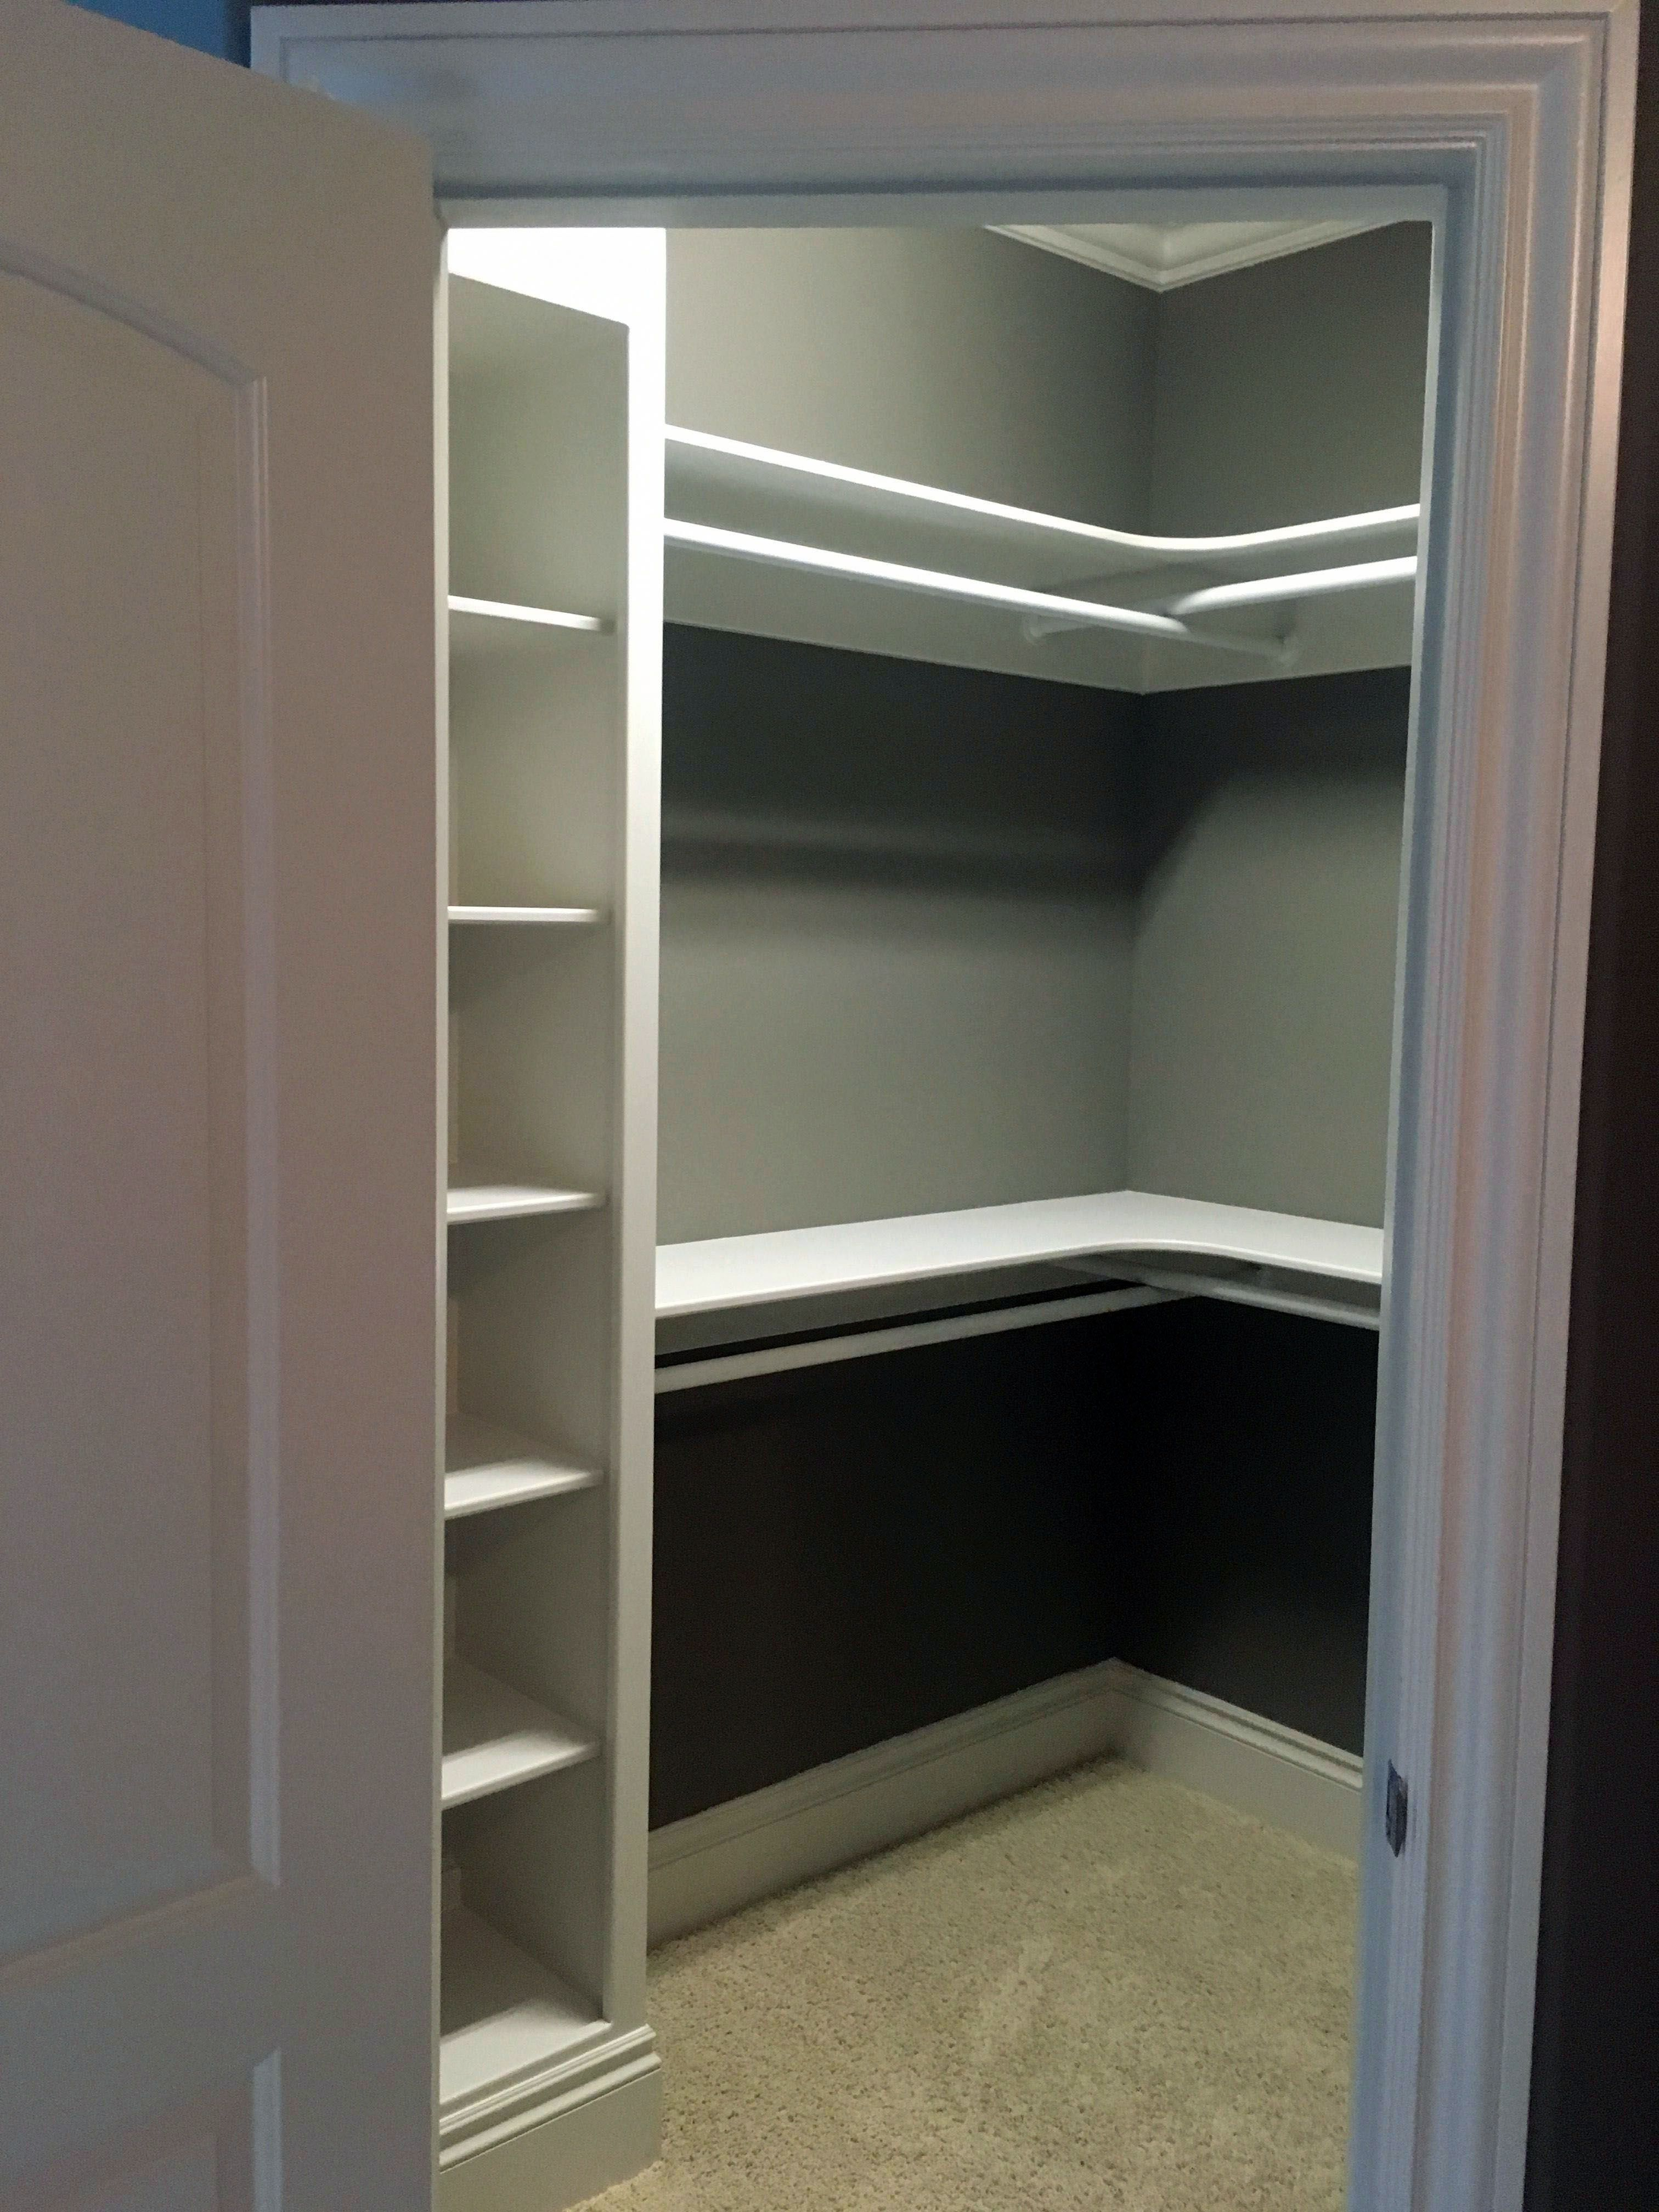 16 Space Saving Diy Bedroom Storage Ideas You Will Love Closet